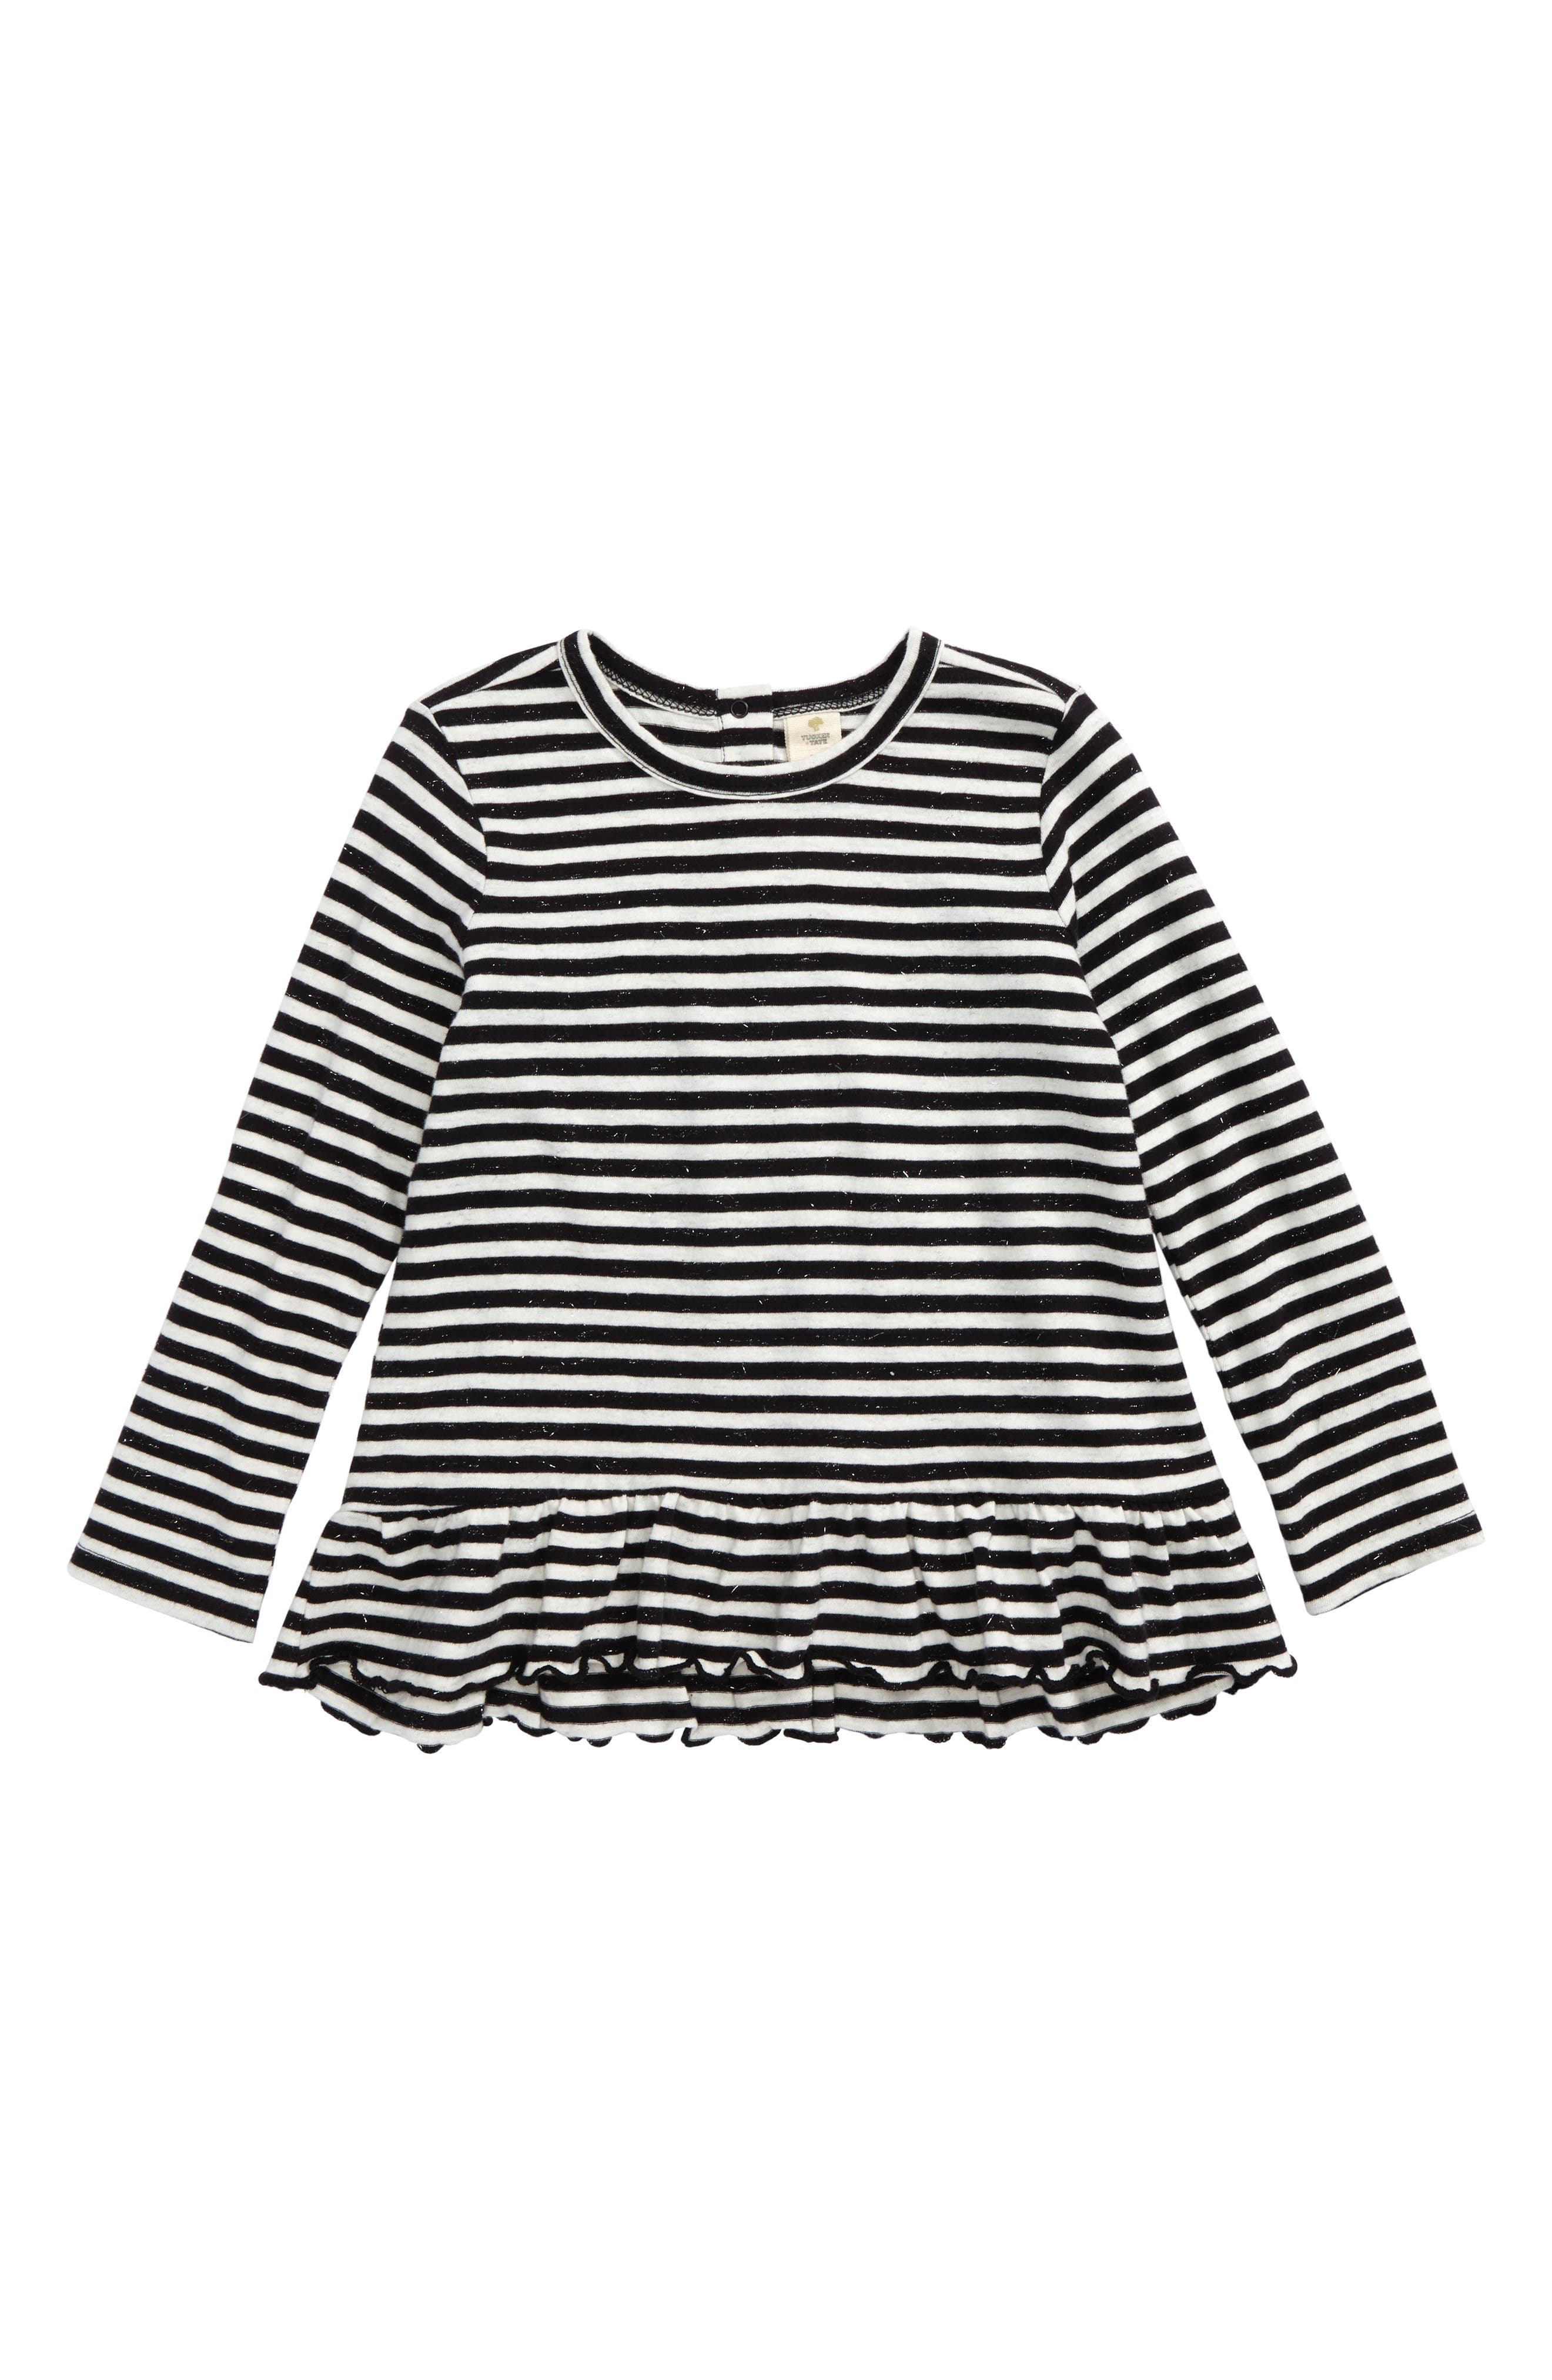 Tucker + Tate Swingy Ruffle Top (Baby Girls)